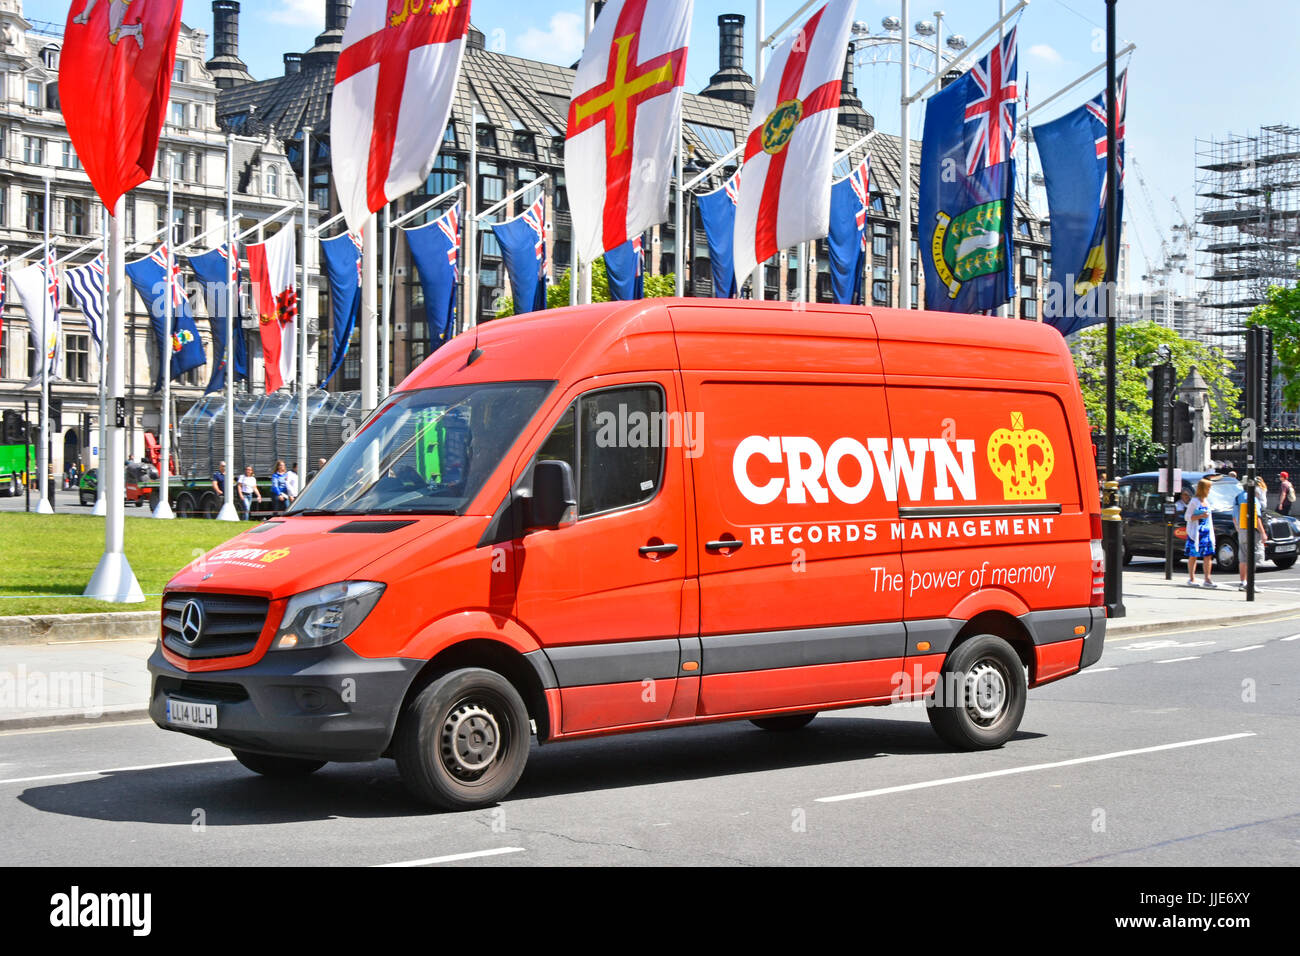 Red van of Crown Records Management company that manages archiving & retrieval of corporate information in physical - Stock Image